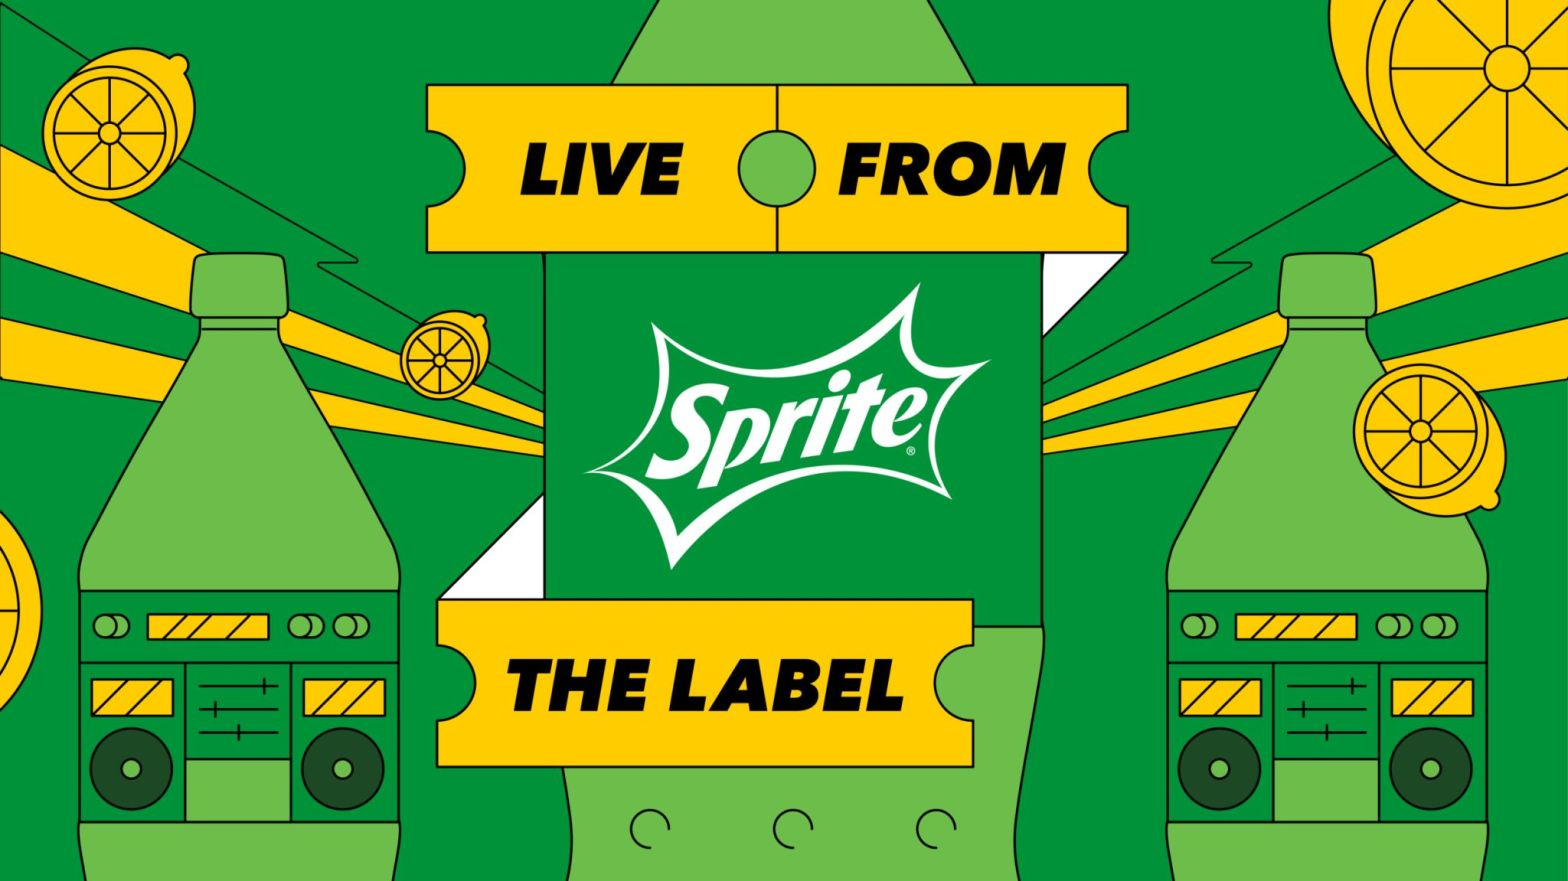 Thumbnail for Sprite's Live Summer Concert Series 'Live from The Label' With Visual Identity By Max Friedman